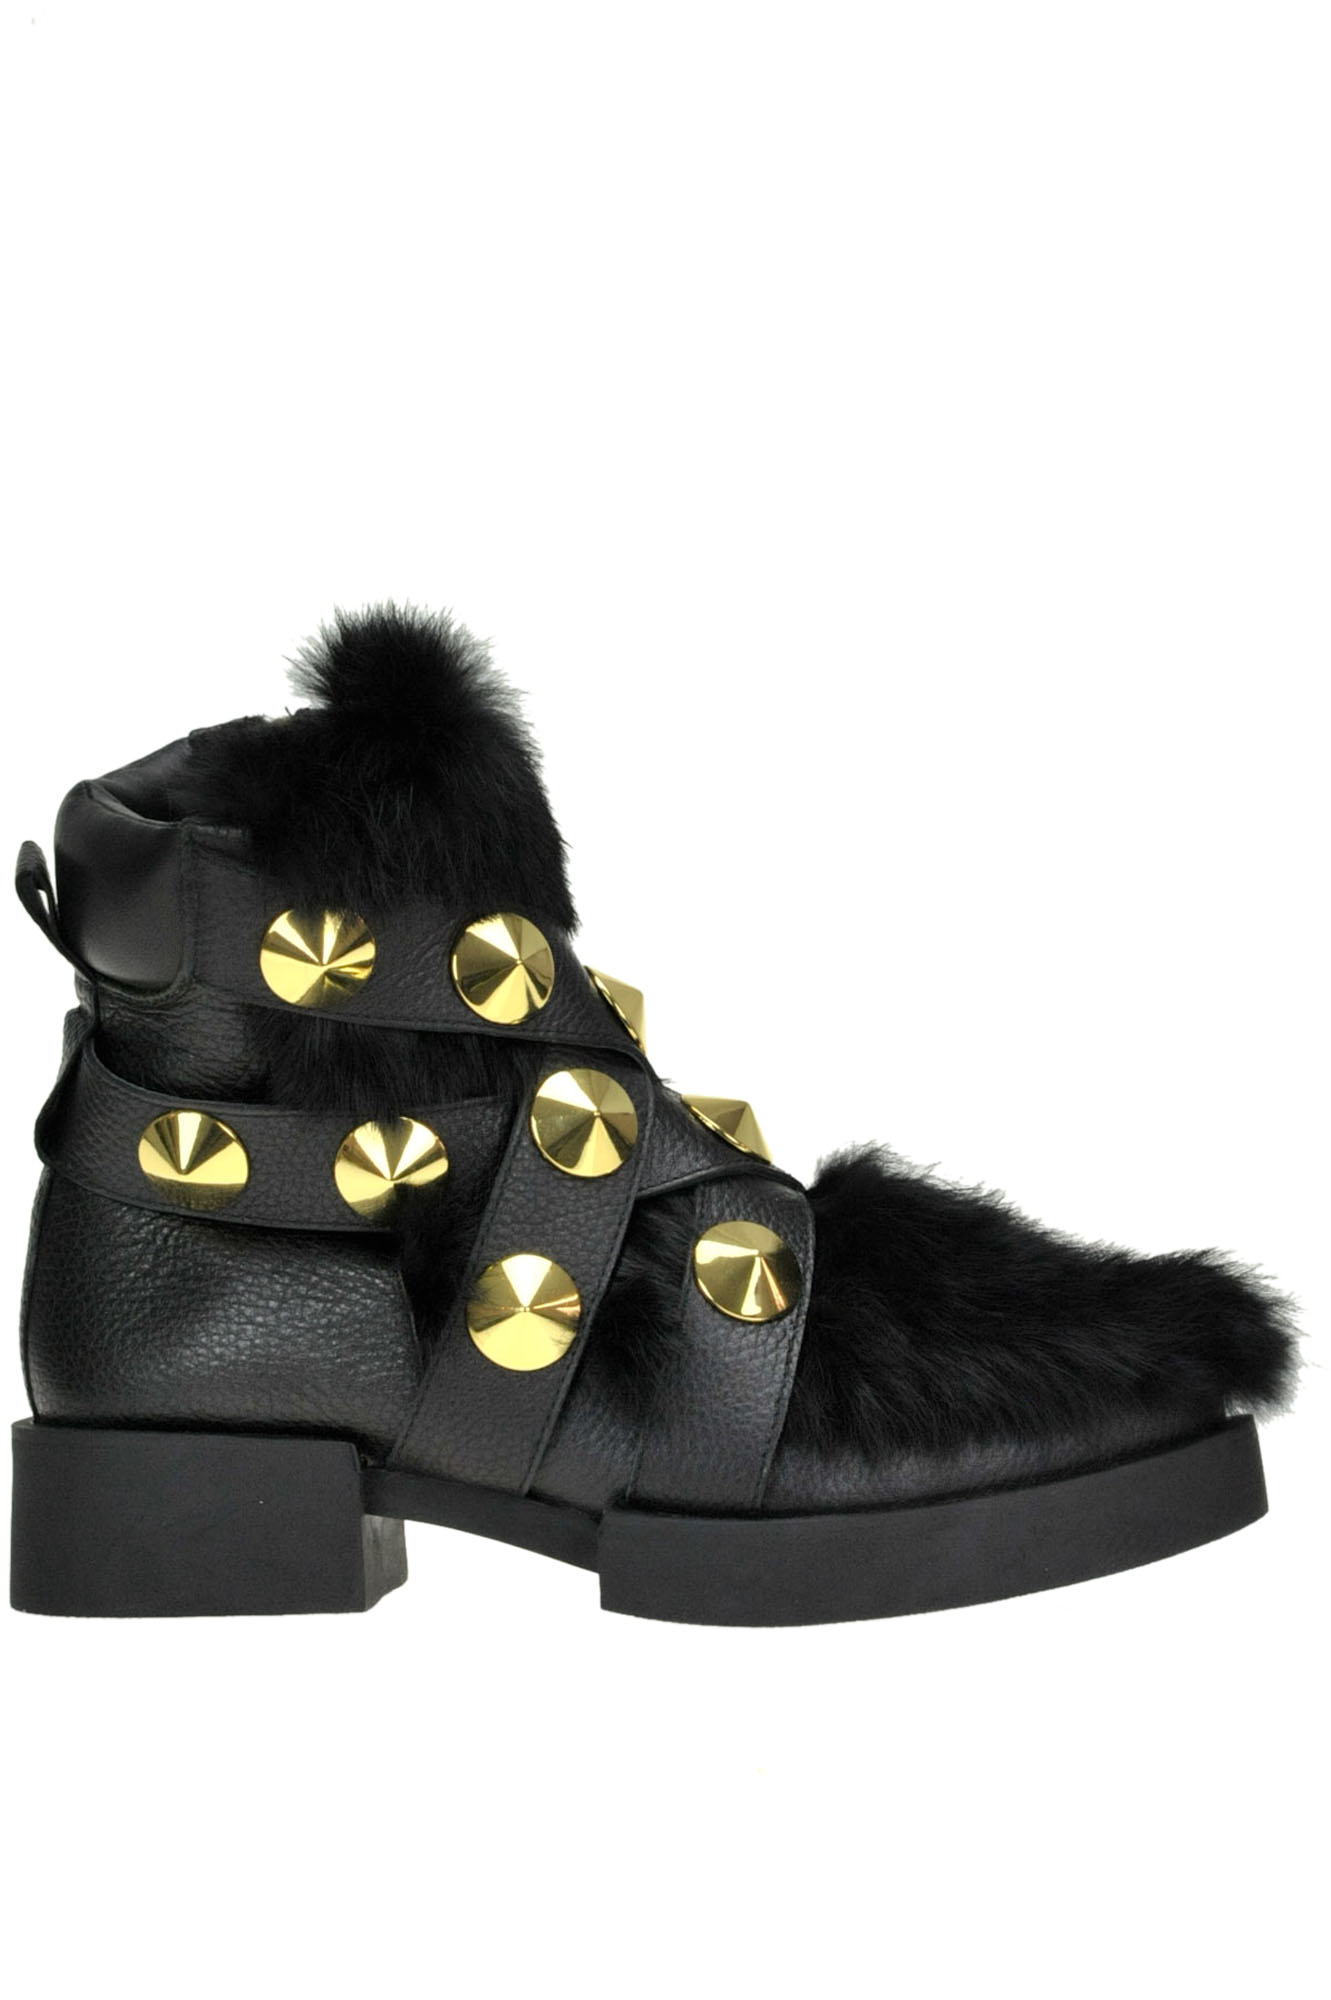 KAT MACONIE Lexi Leather And Eco-Fur Ankle-Boots in Black